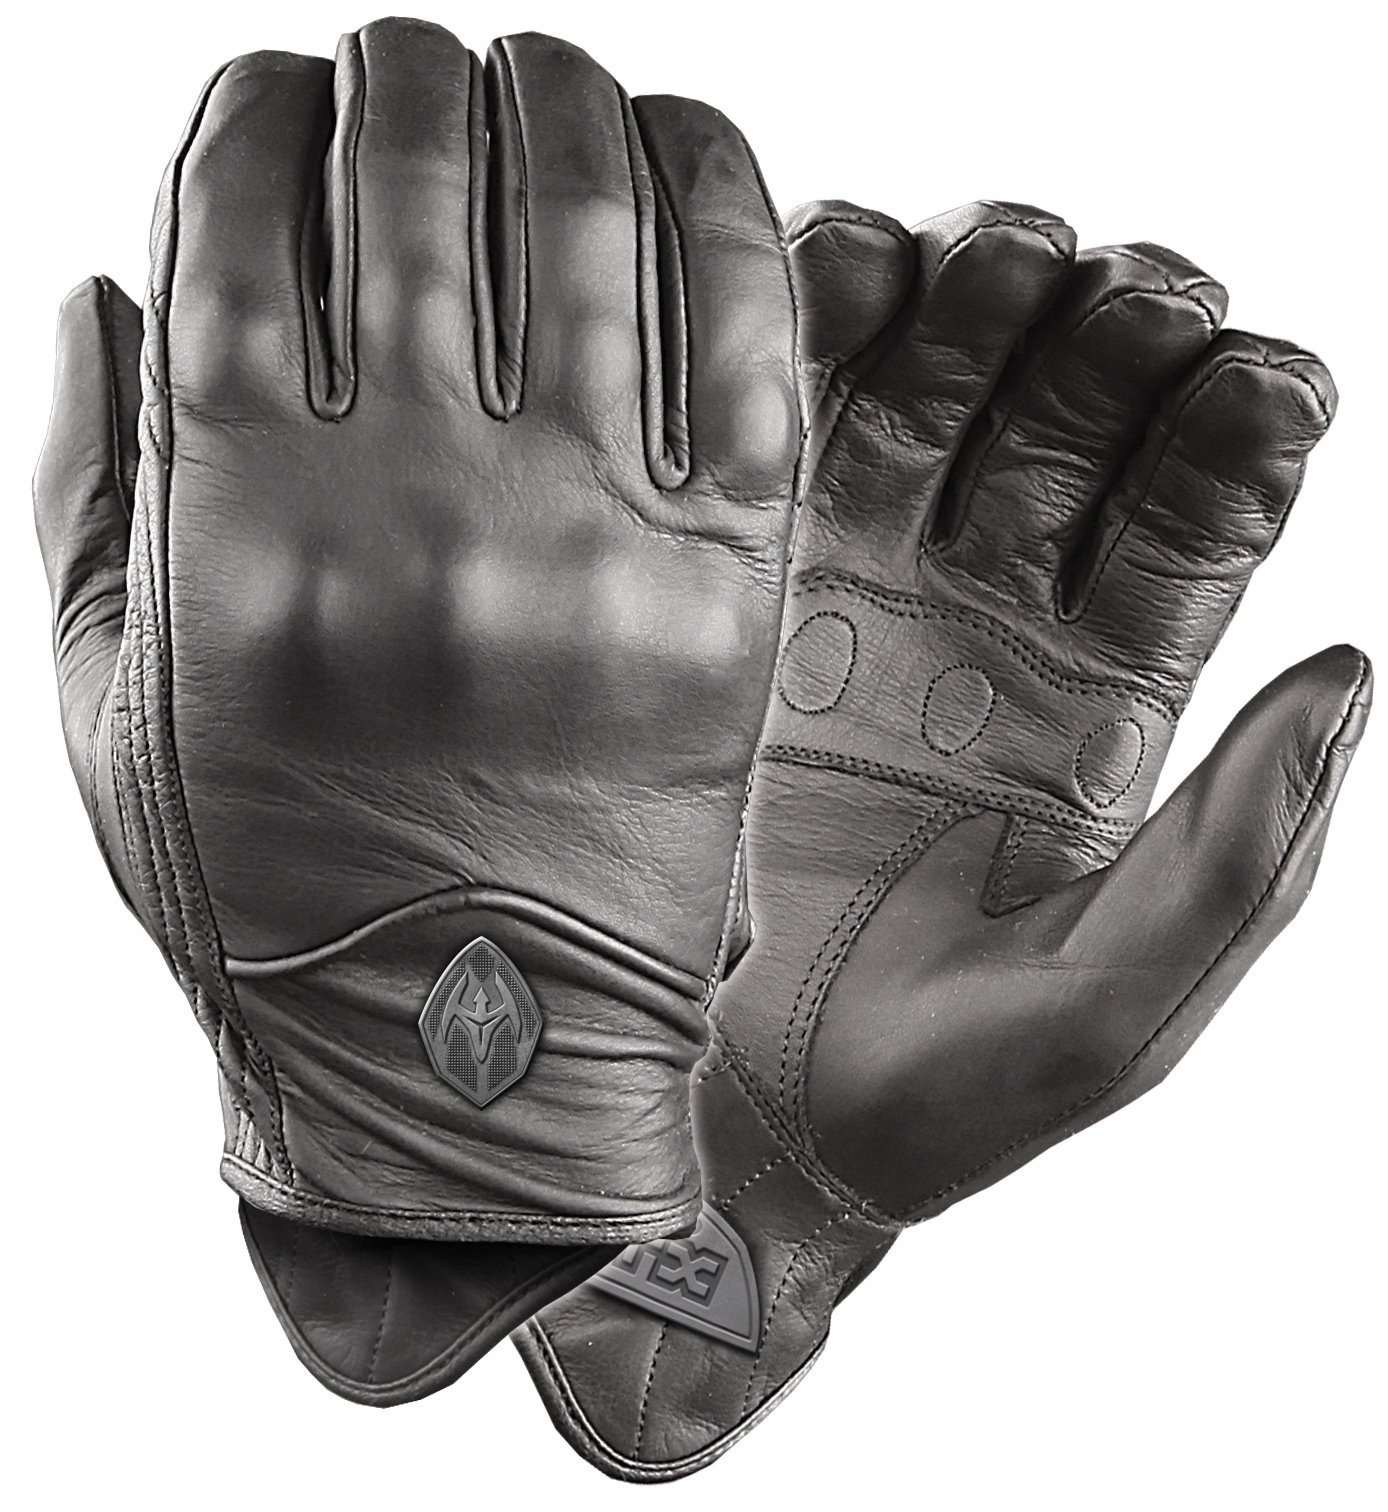 Damascus ATX95 All-Leather Gloves with Knuckle Armor, Large